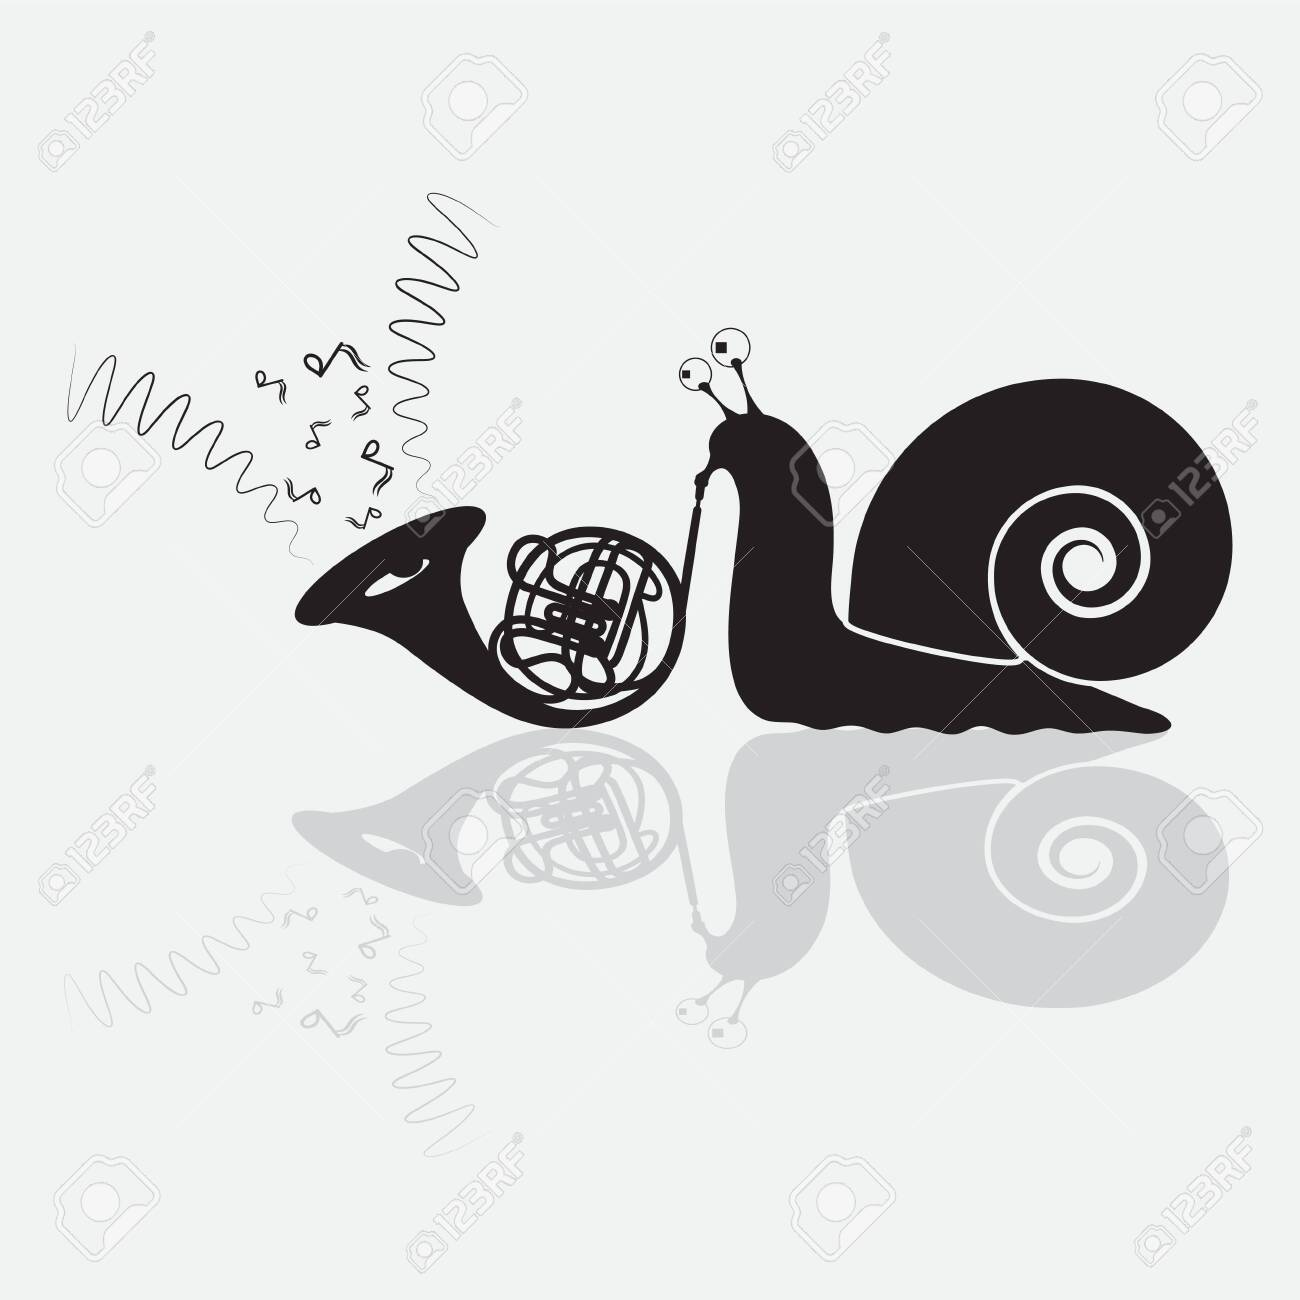 Snail plays the trumpet humor black silhouette, badge. - 126396438